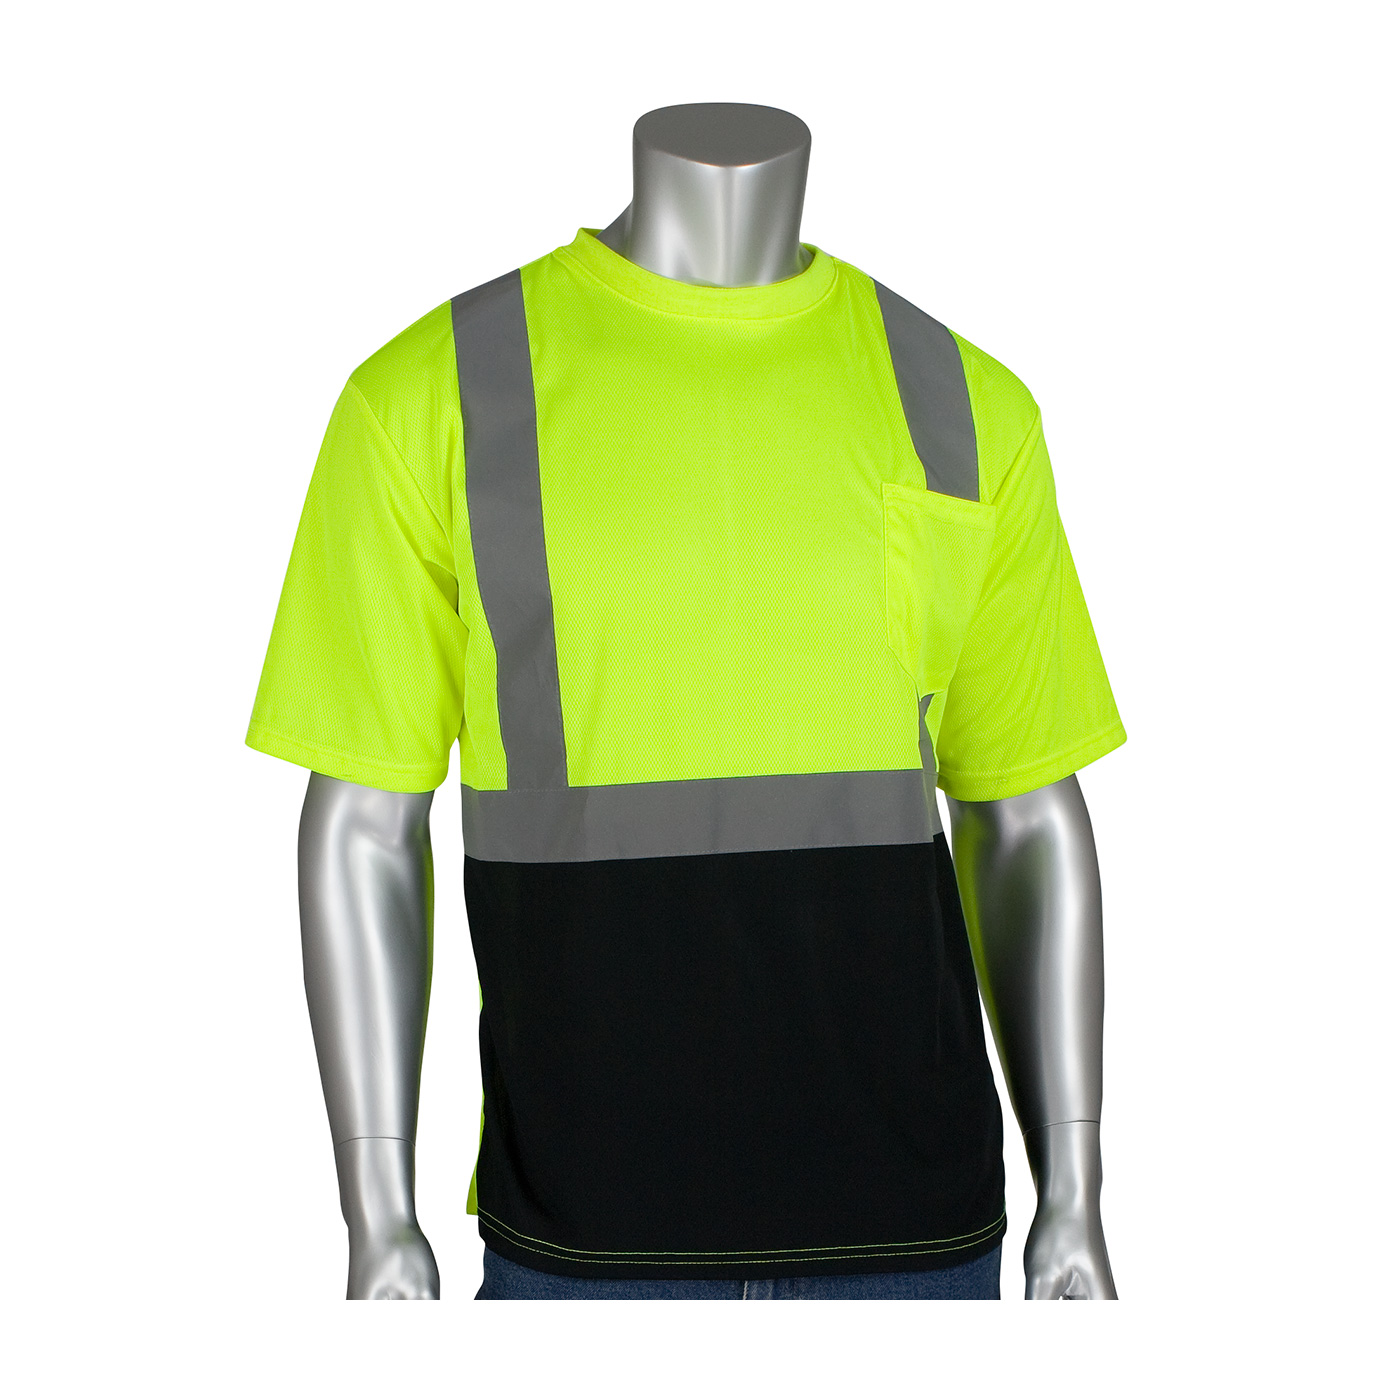 #312-1275B PIP® Class 2 Hi-Viz T-Shirts w/ Black Bottom and Chest Pocket